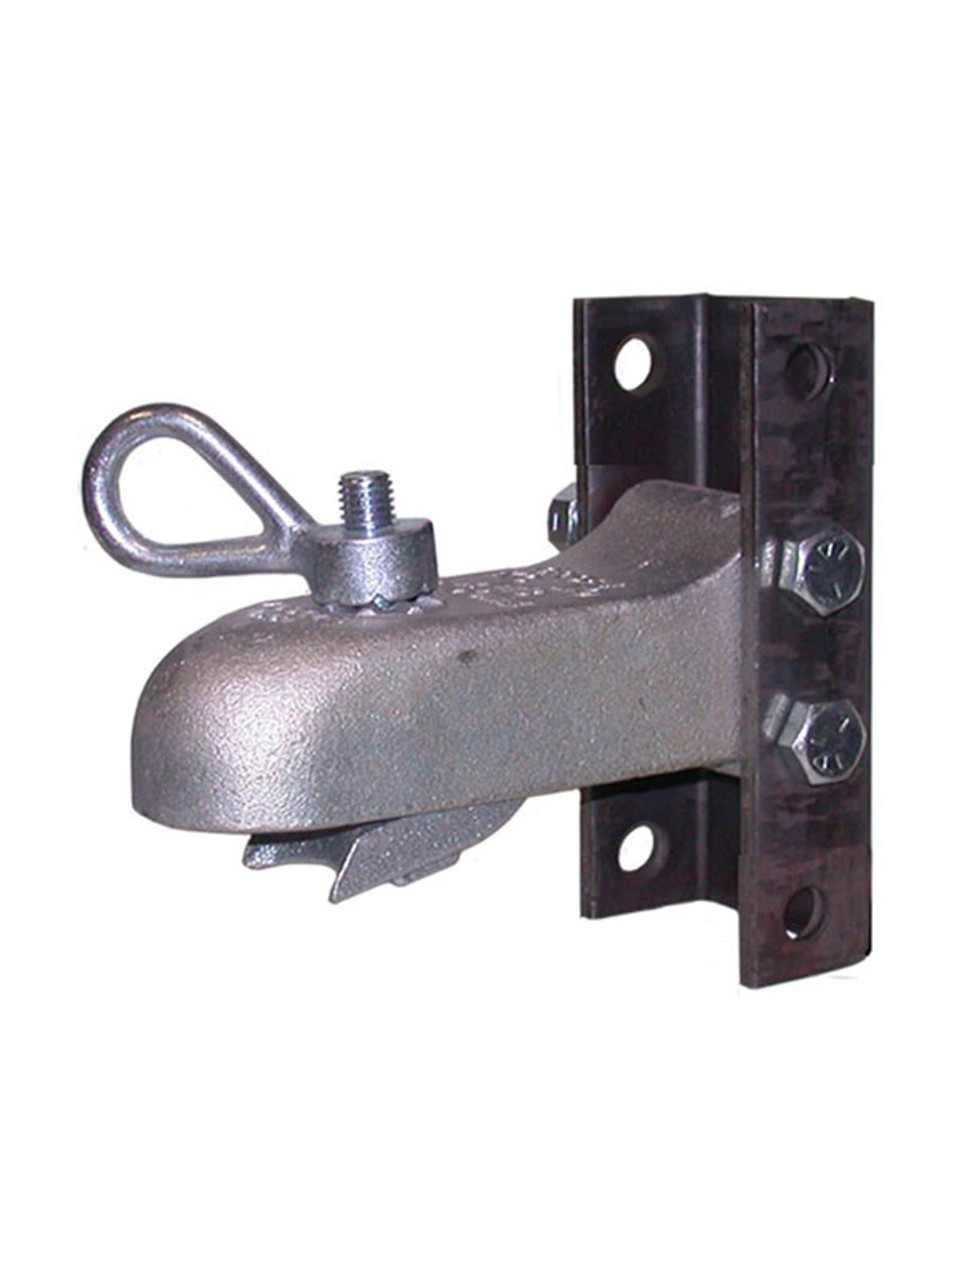 AH3-ASY --- CROFT Adjustable Coupler with N-3 Loop Nut with 4 Hole Channel - 7,000lb Capacity - 2""